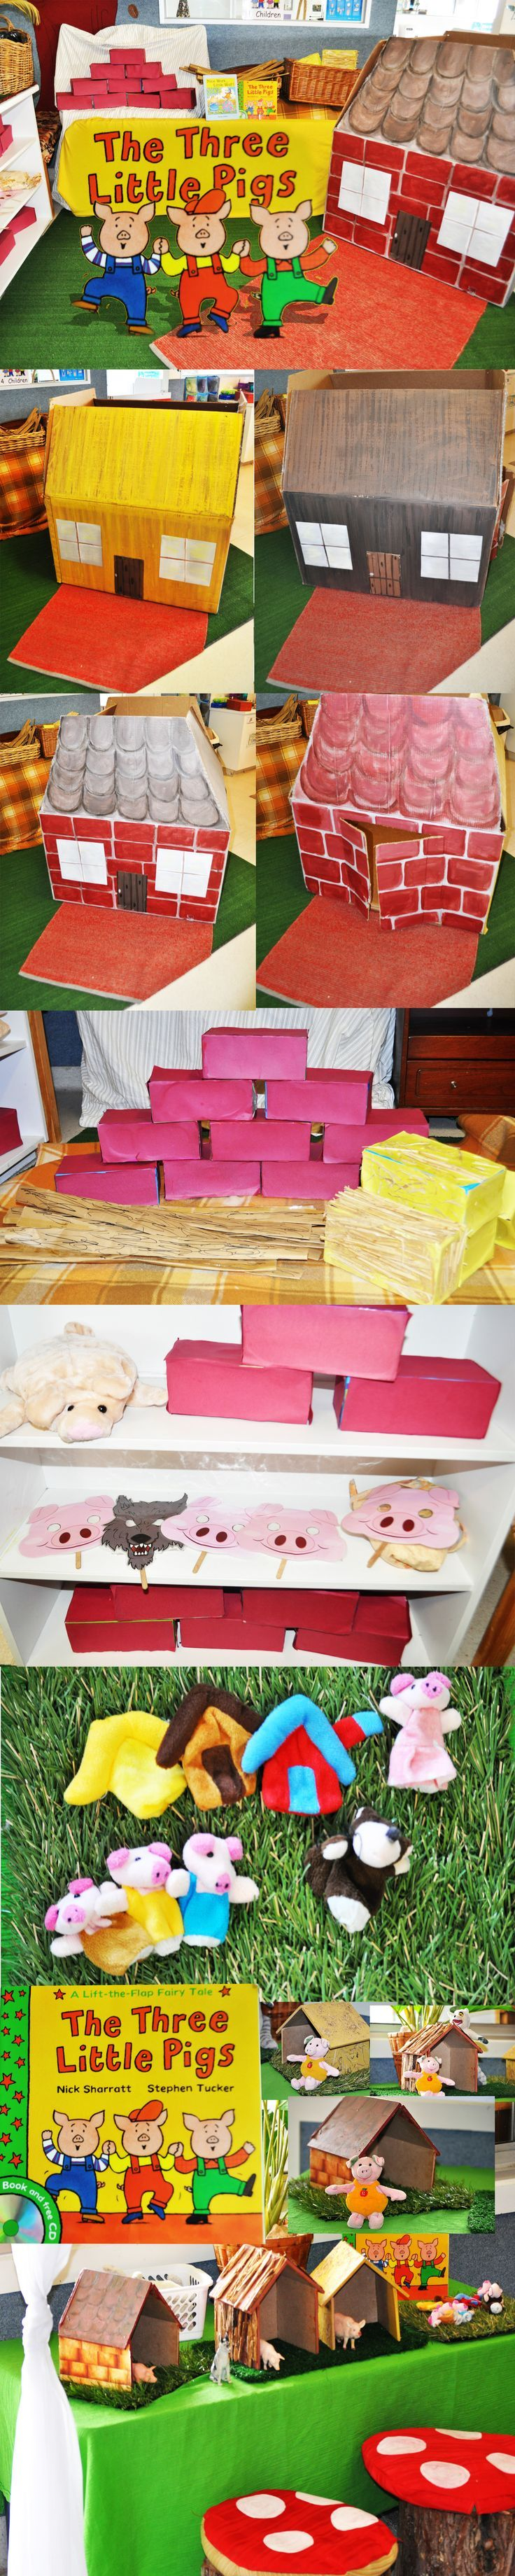 The Three Little Pigs Story comes to life through life size props and puppets. After reading the Three Little Pigs Book by Nick Sharratt and Stephen Tucker, we turned a cardboard box into the house of straw, sticks and bricks. Stuck red paper to tissue boxes for the bricks, Yellow paper and hay for the straw and rolled up brown paper for the sticks. I bought puppets from Ebay and we made little wooden houses for a table activity. Now the children can explore the world of the 'Three Little Pi